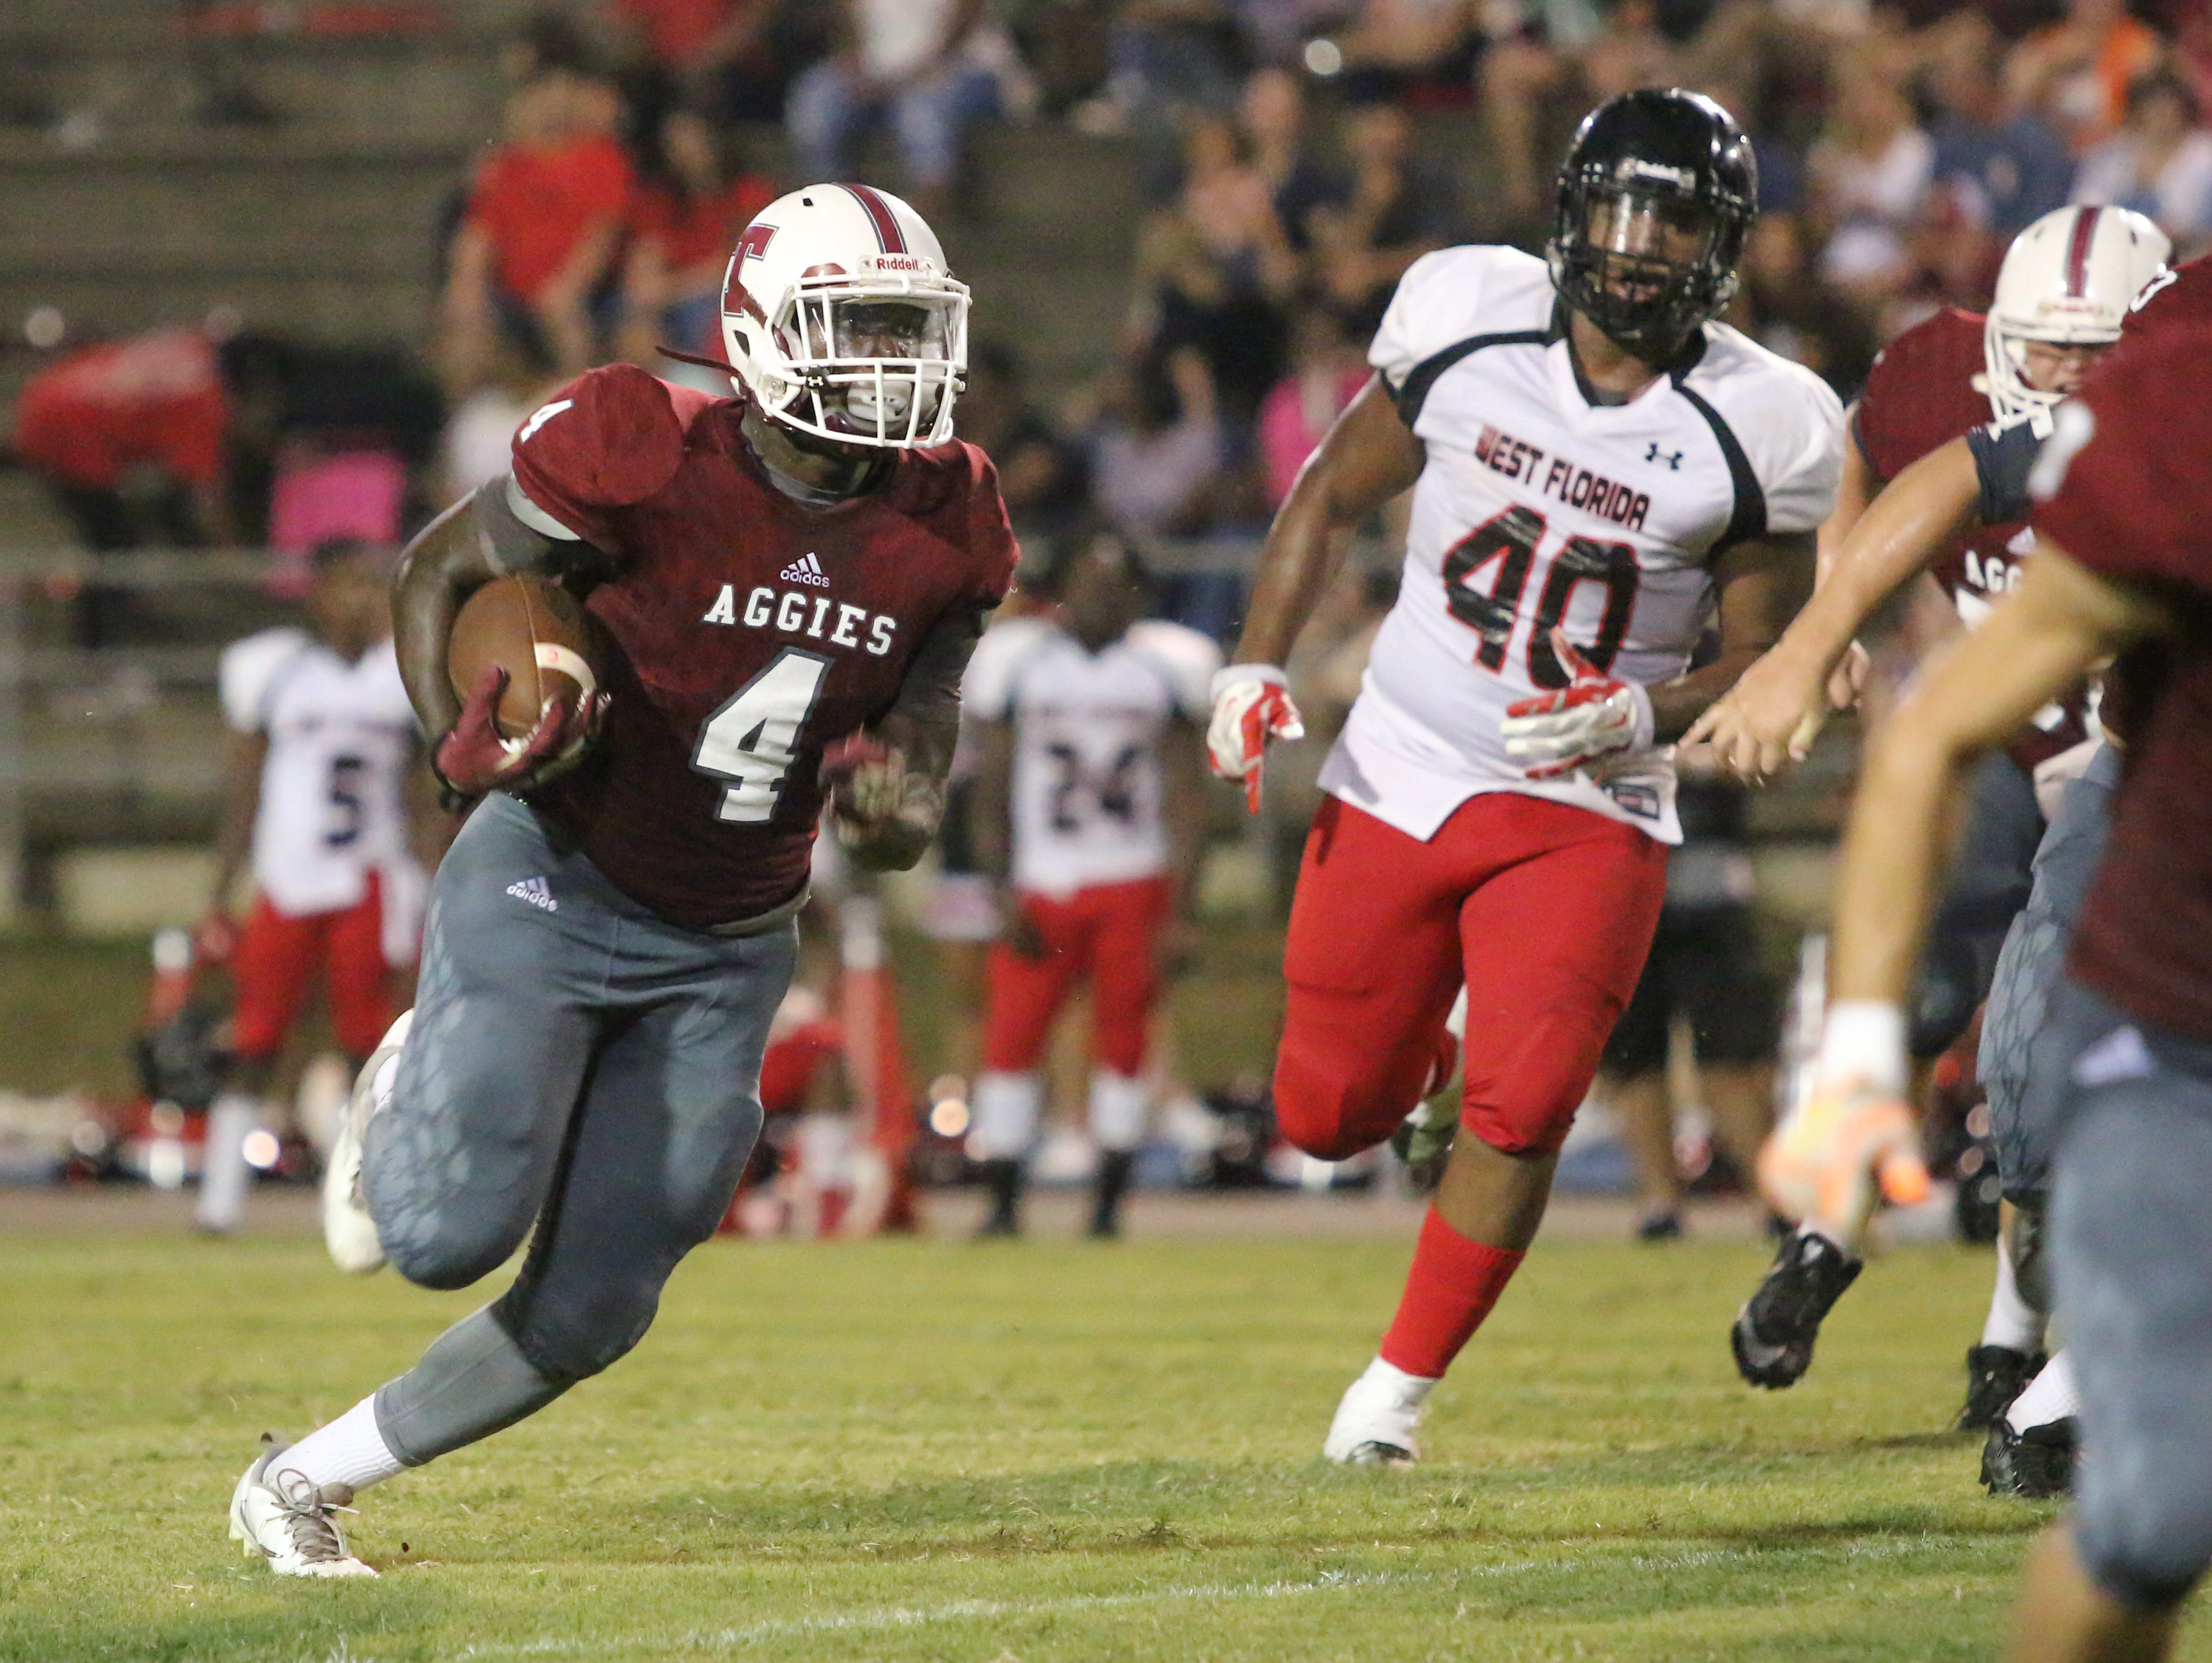 Tate's Ladarryl Paige (4) races past the line of scrimmage Friday night at Tate High School.